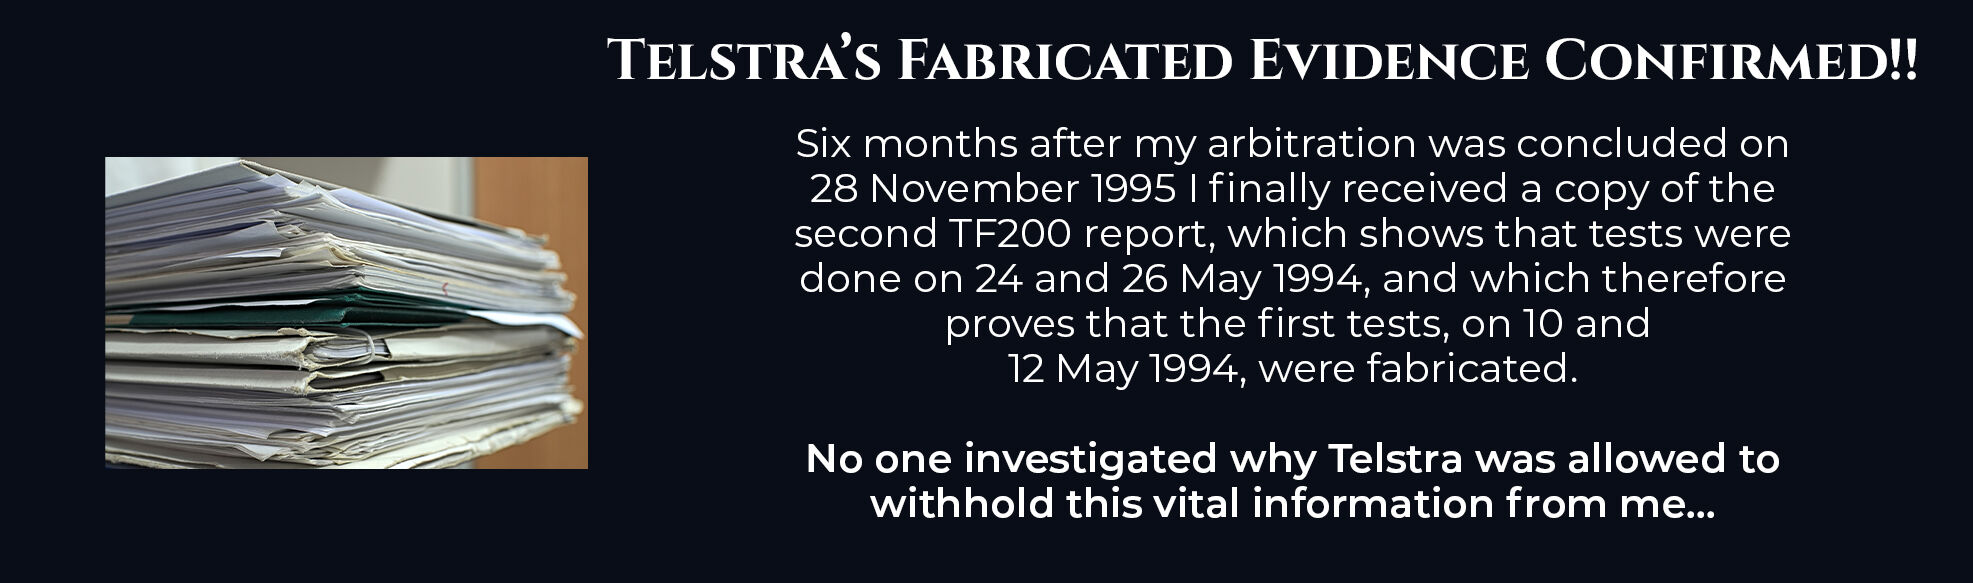 Absent Justice - Telstras Fabricated Evidence Confirmed